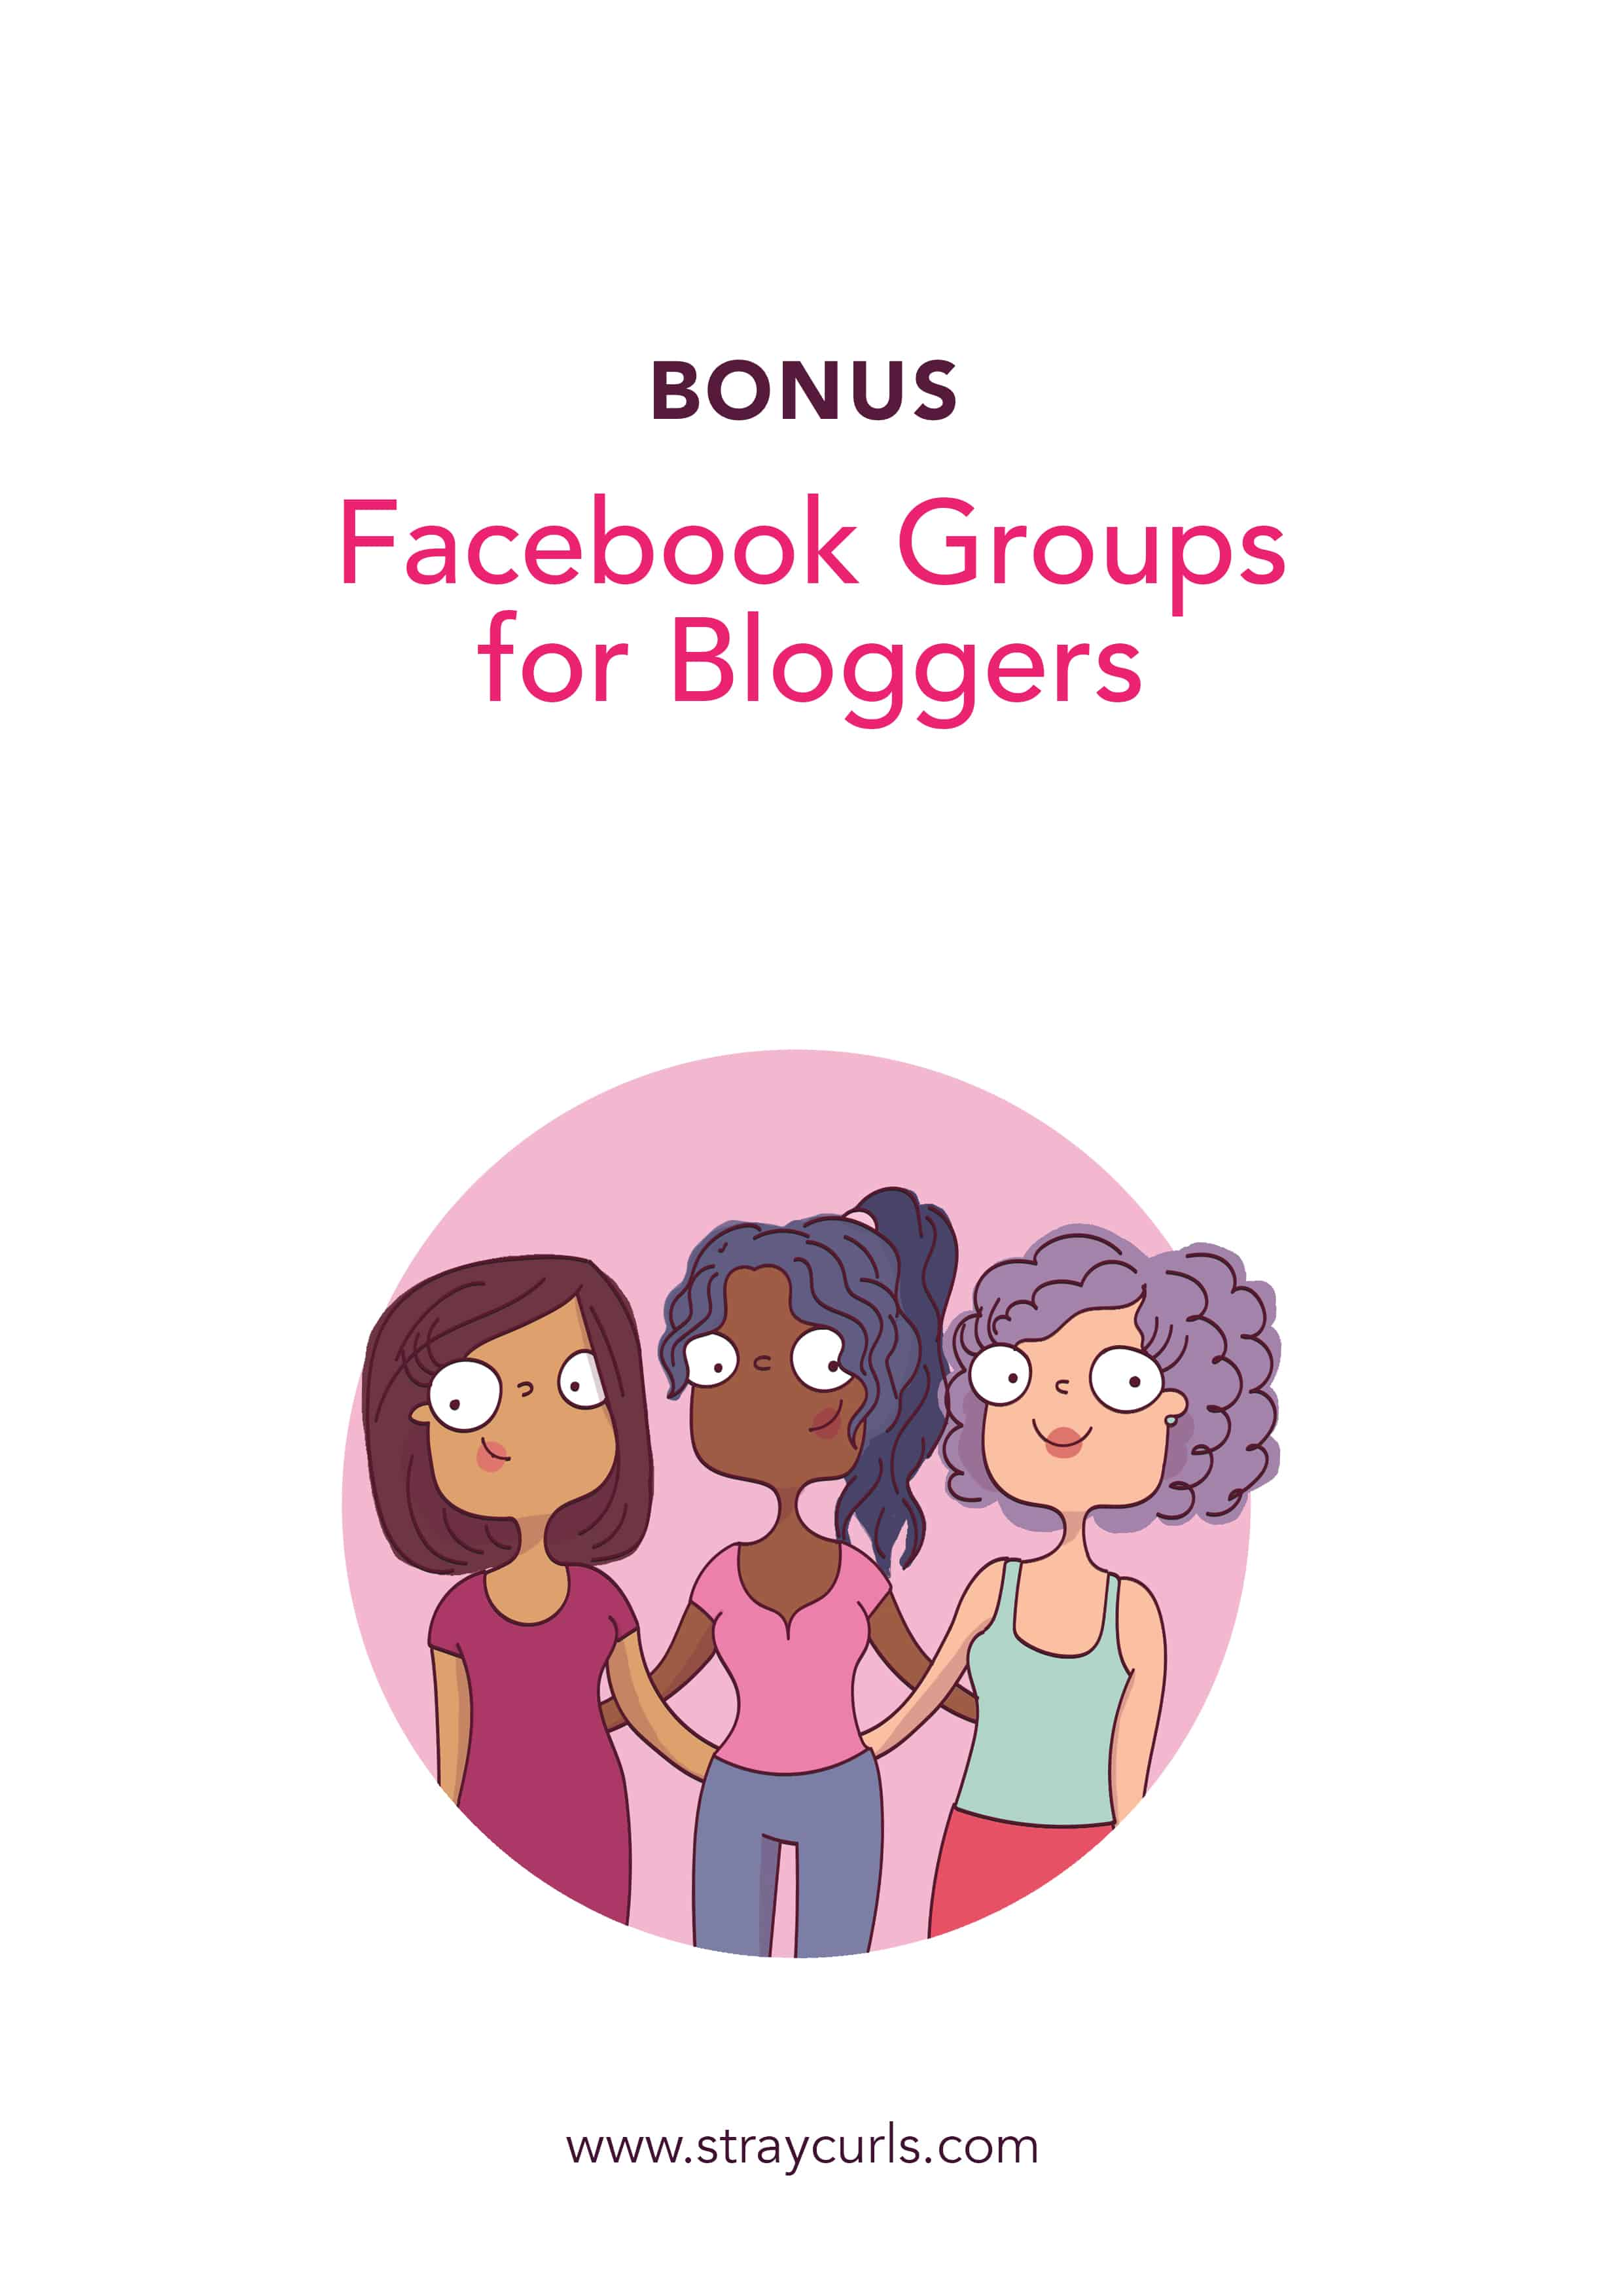 Facebook Groups for Bloggers so that you can engage with like minded people and grow your blog.